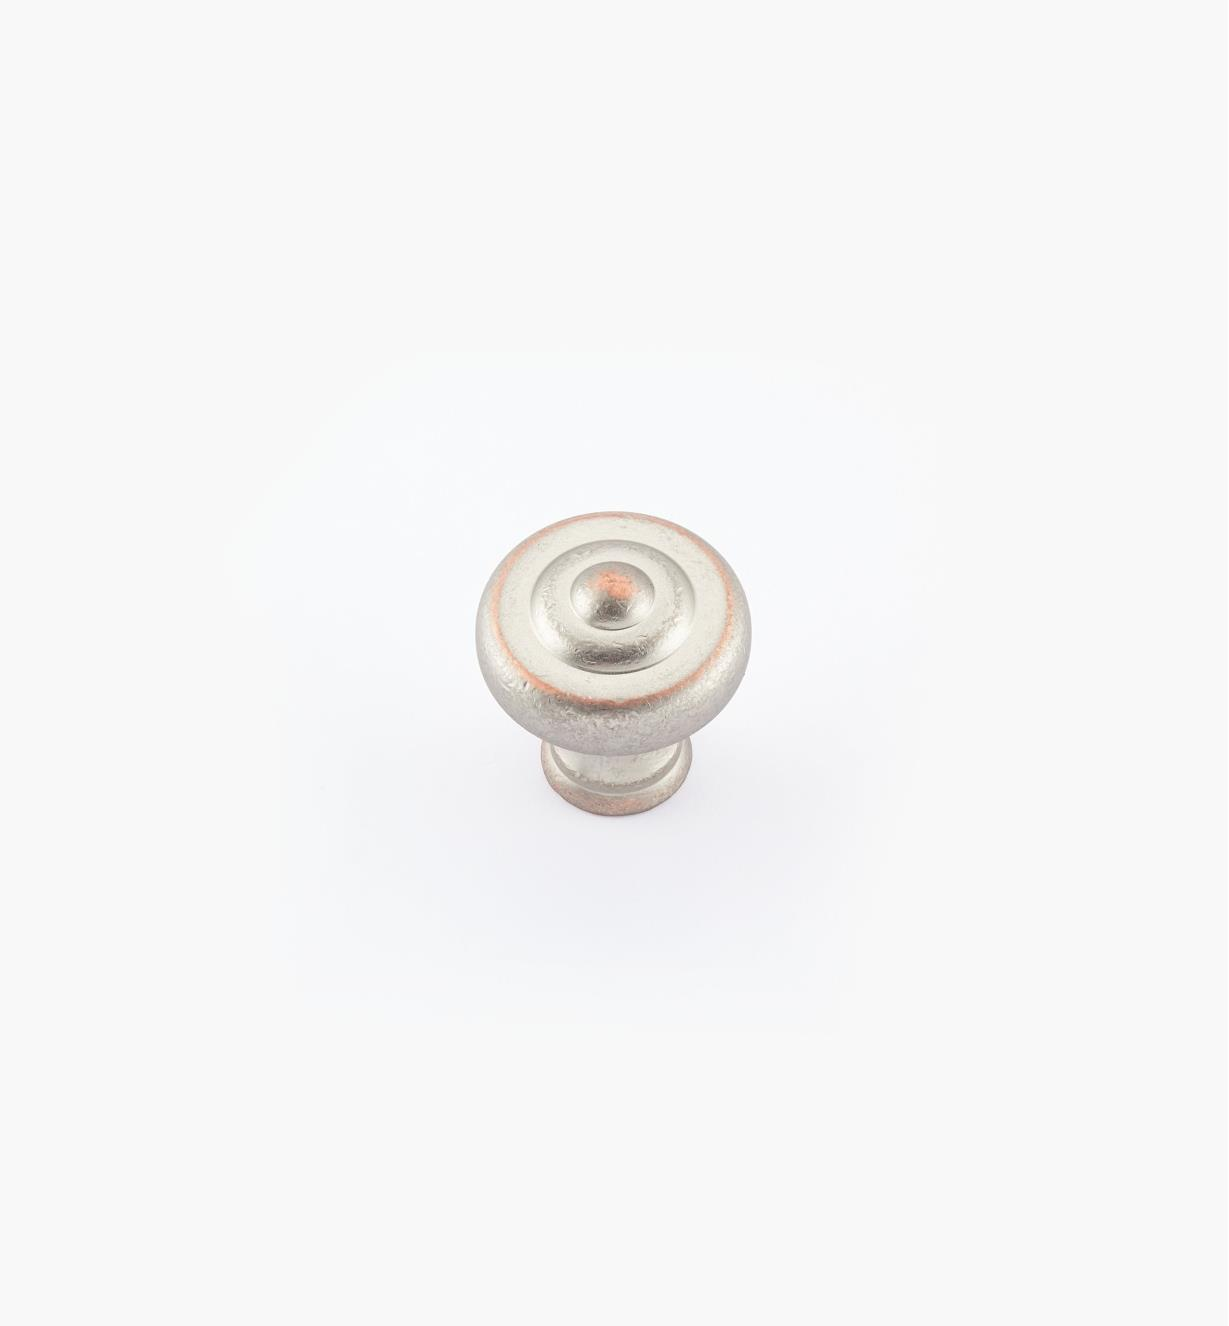 "02W1842 - 1 1/4"" x 1 3/8"" Weathered Nickel-Copper Ring Knob"